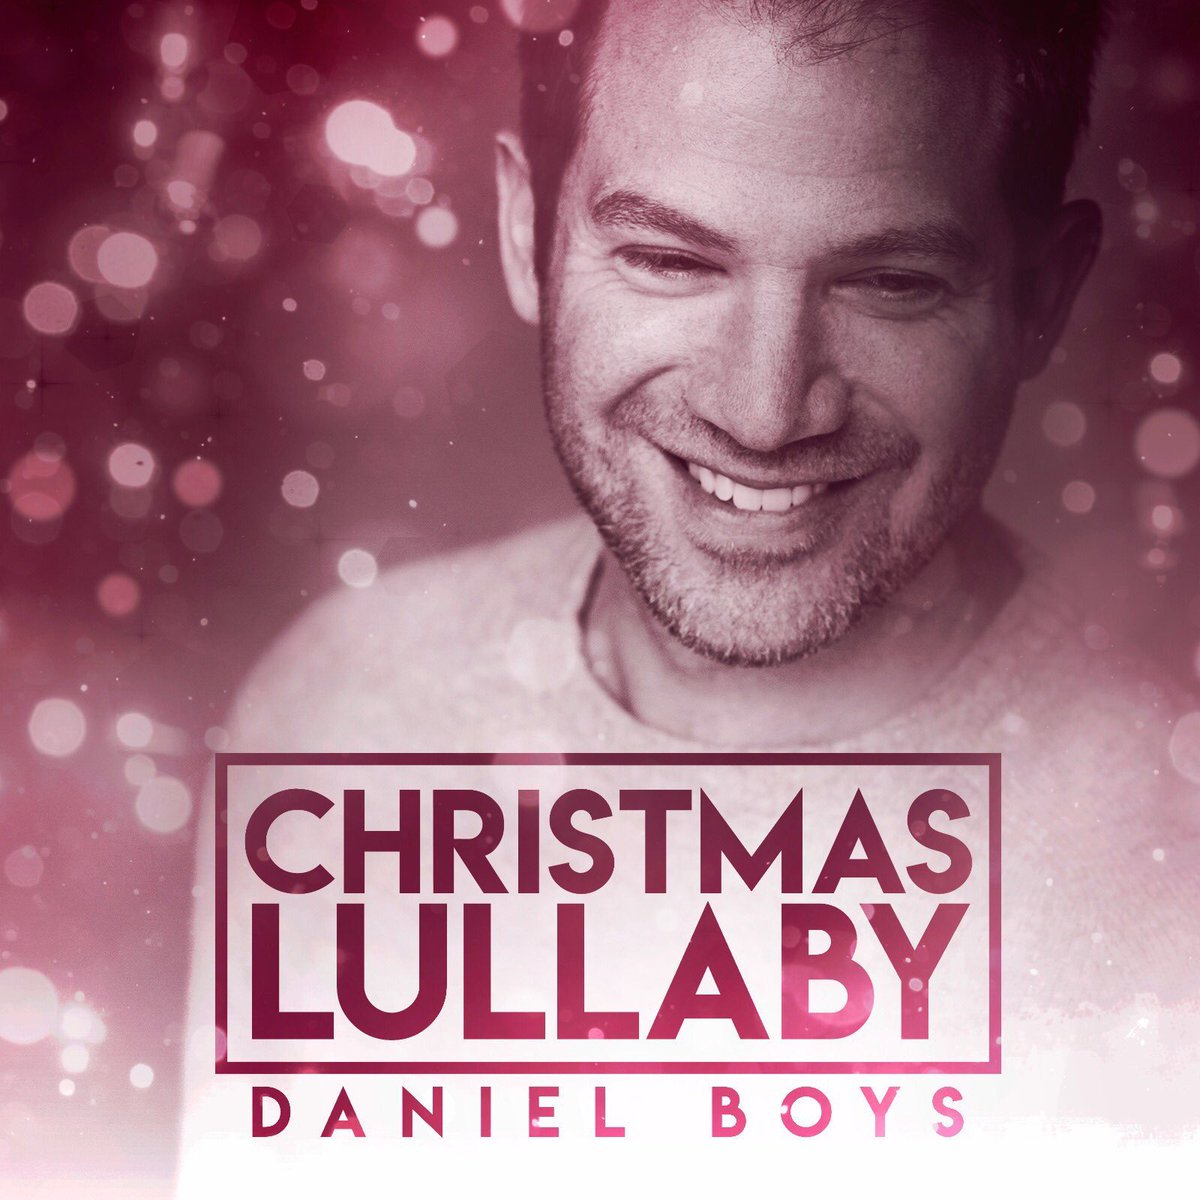 Well it's out! @danielboys' New Christmas single is out on every digital platform: Amazon, iTunes, Spotify, Google Play, you name it!!  #ChristmasLullaby